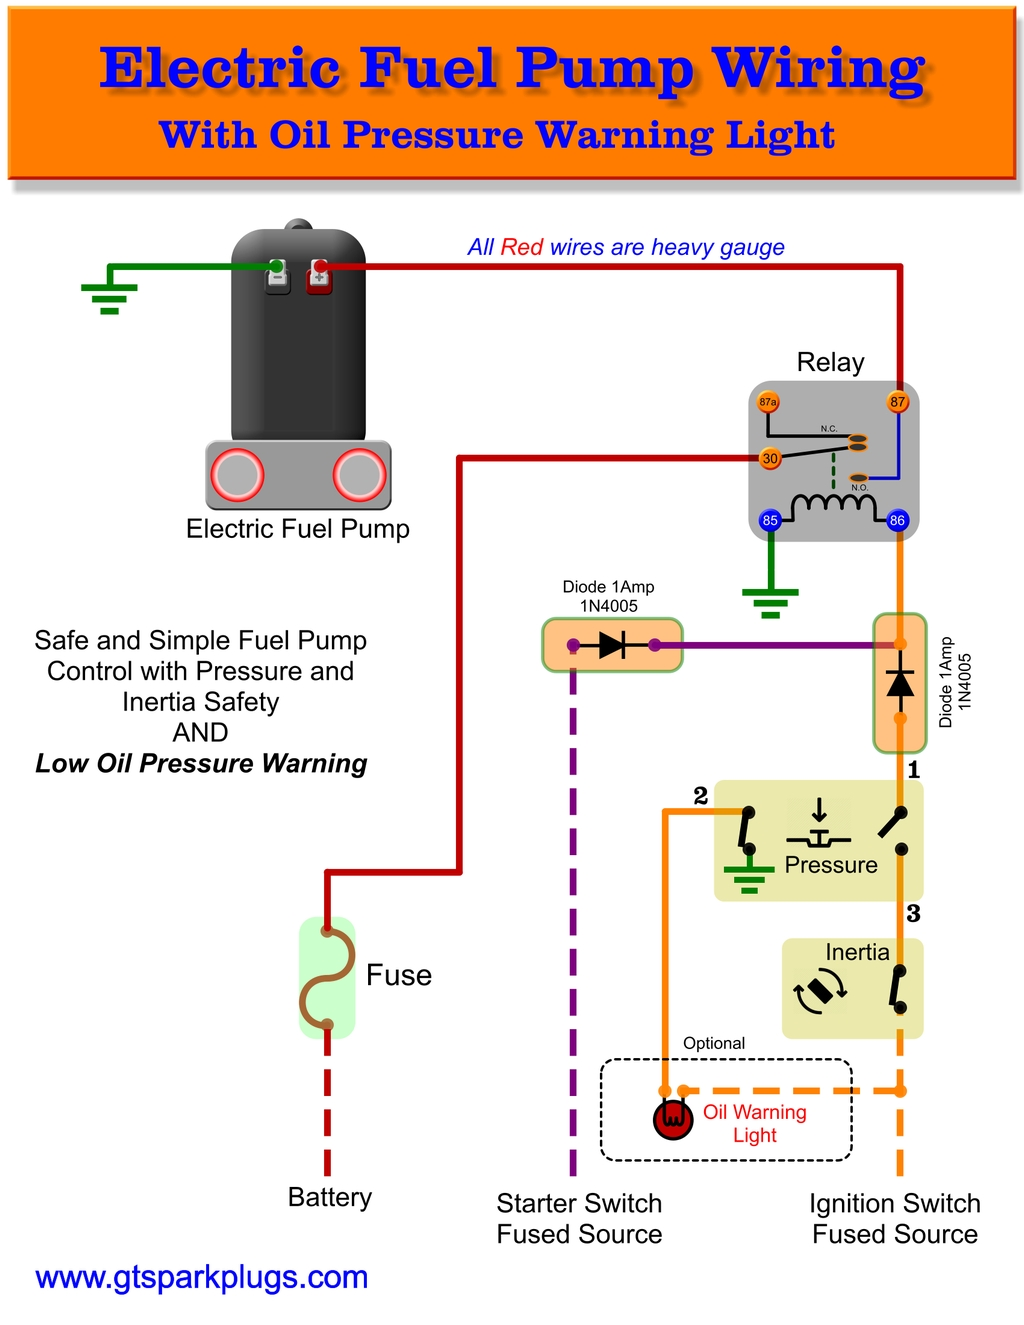 Electric Fuel Pump Wiring Diagram Gtsparkplugs Electronic Horn Schematic This Is A Simple Guide To Safer For Your Spend Some Time Things Up Right And In The Event Of Problem It Can Save You